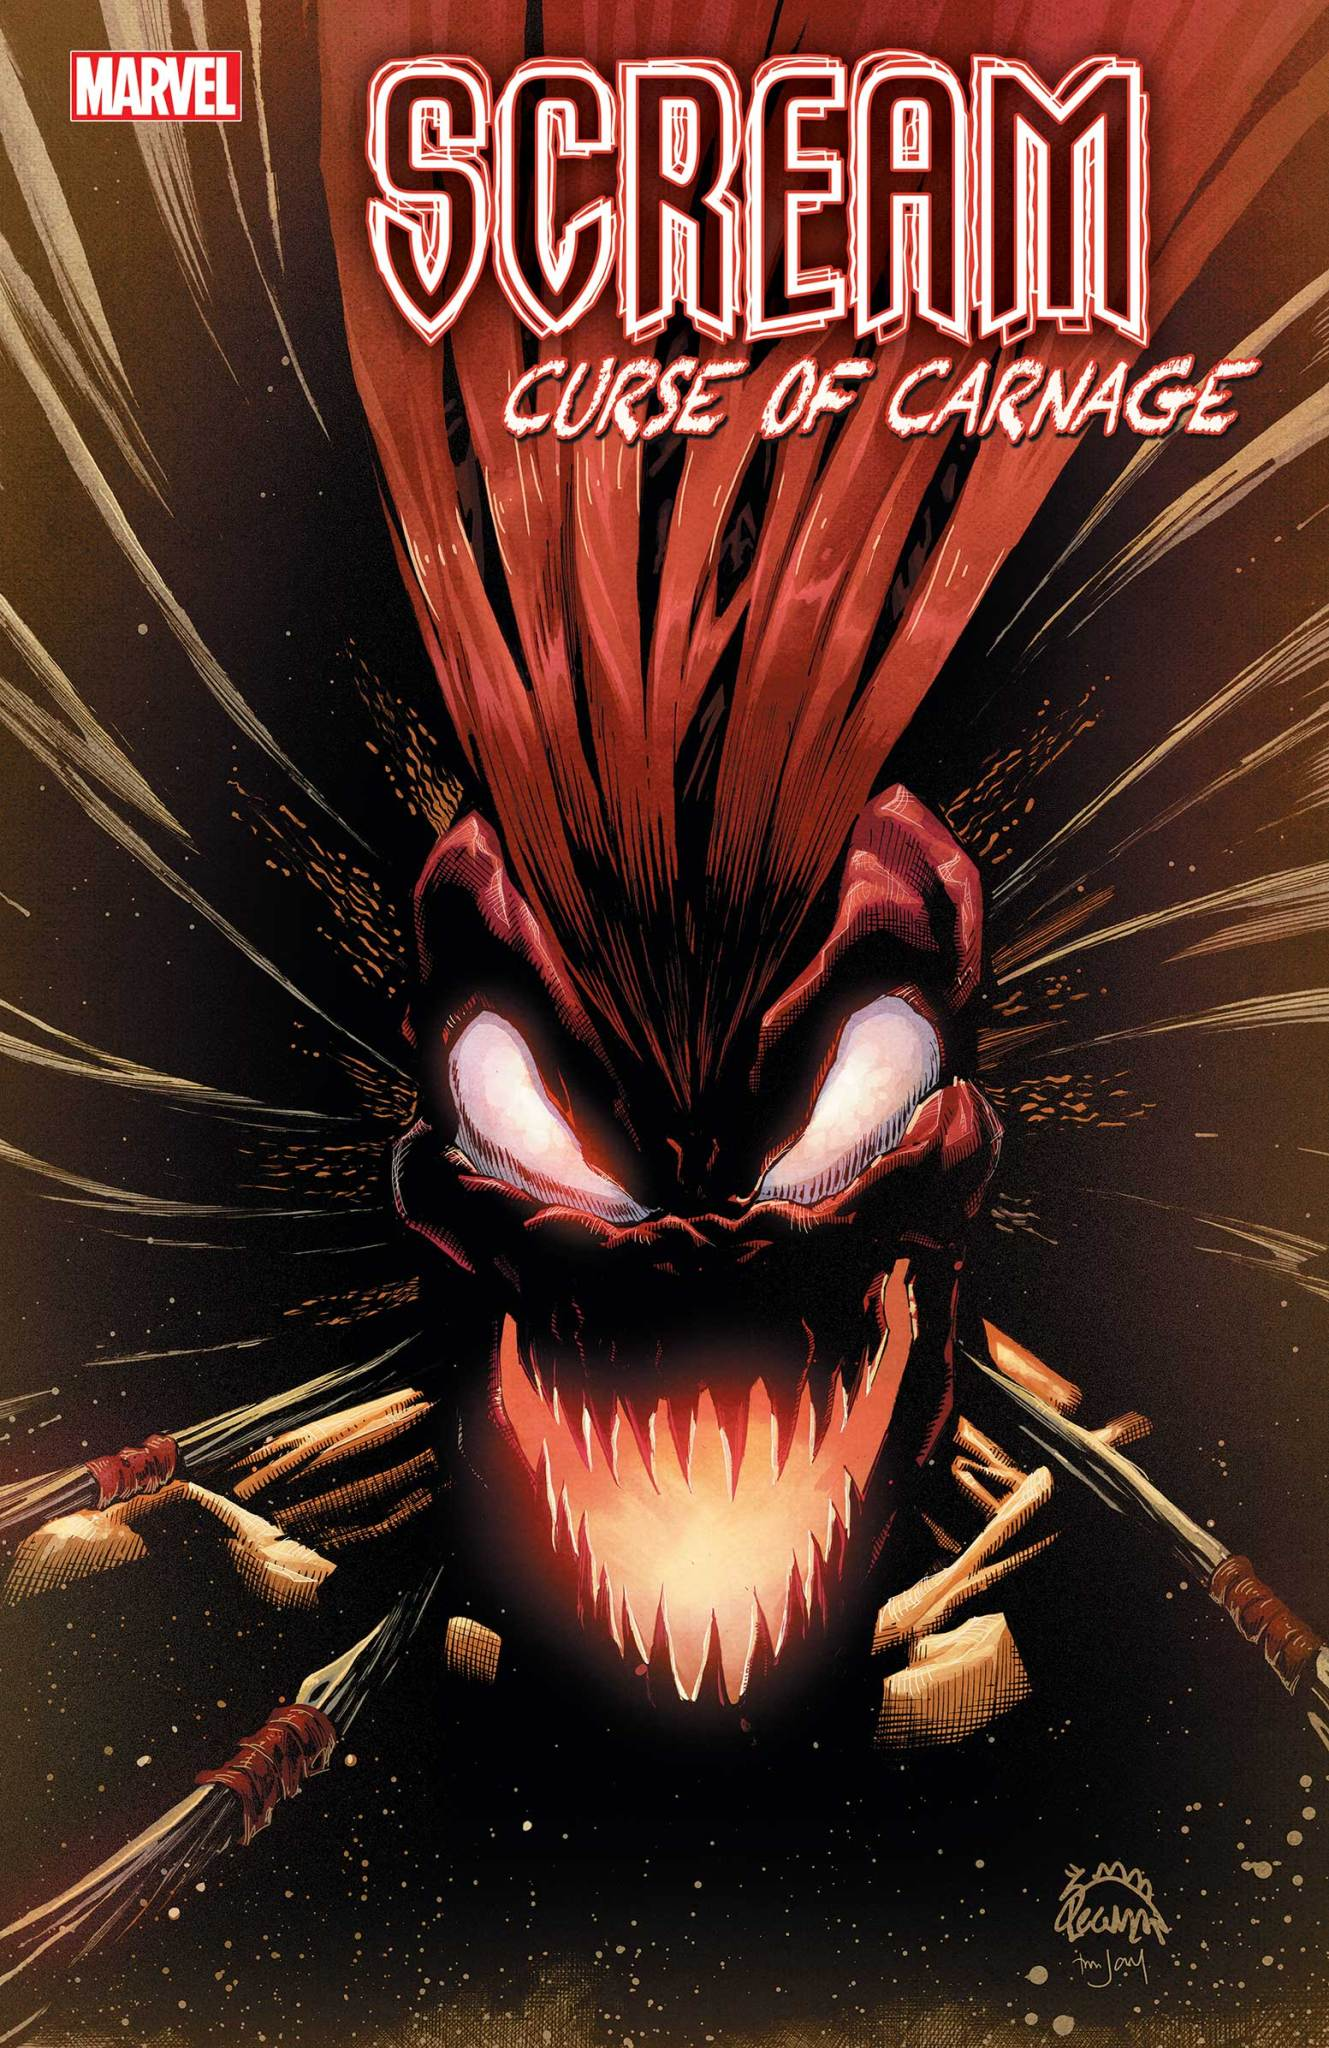 Scream: Curse of Carnage #5